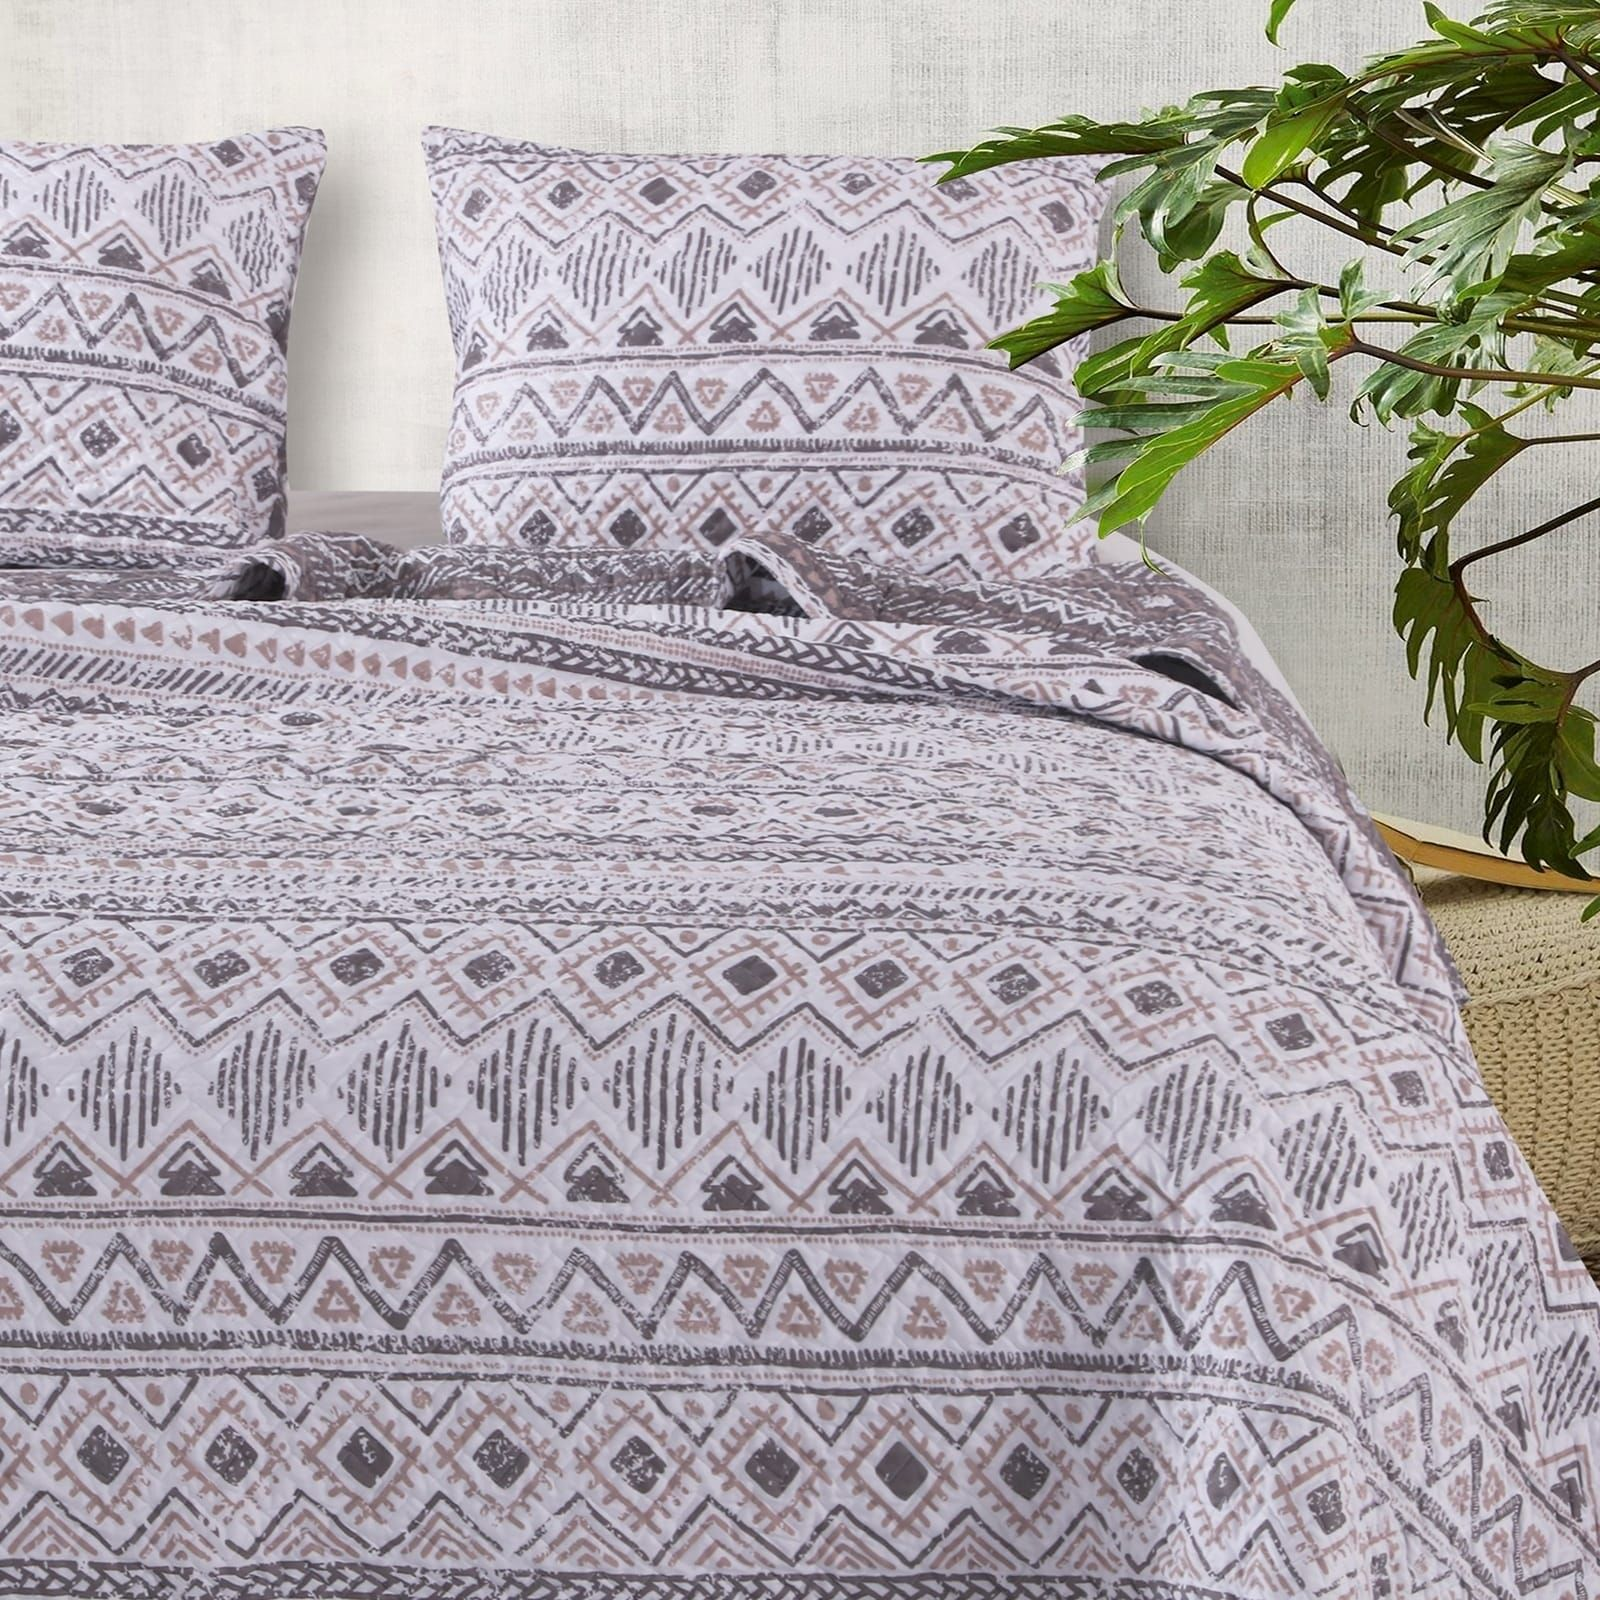 Off//Off//White Full//Queen Bedding Bedspread Set Barefoot Bungalow Willow Quilt